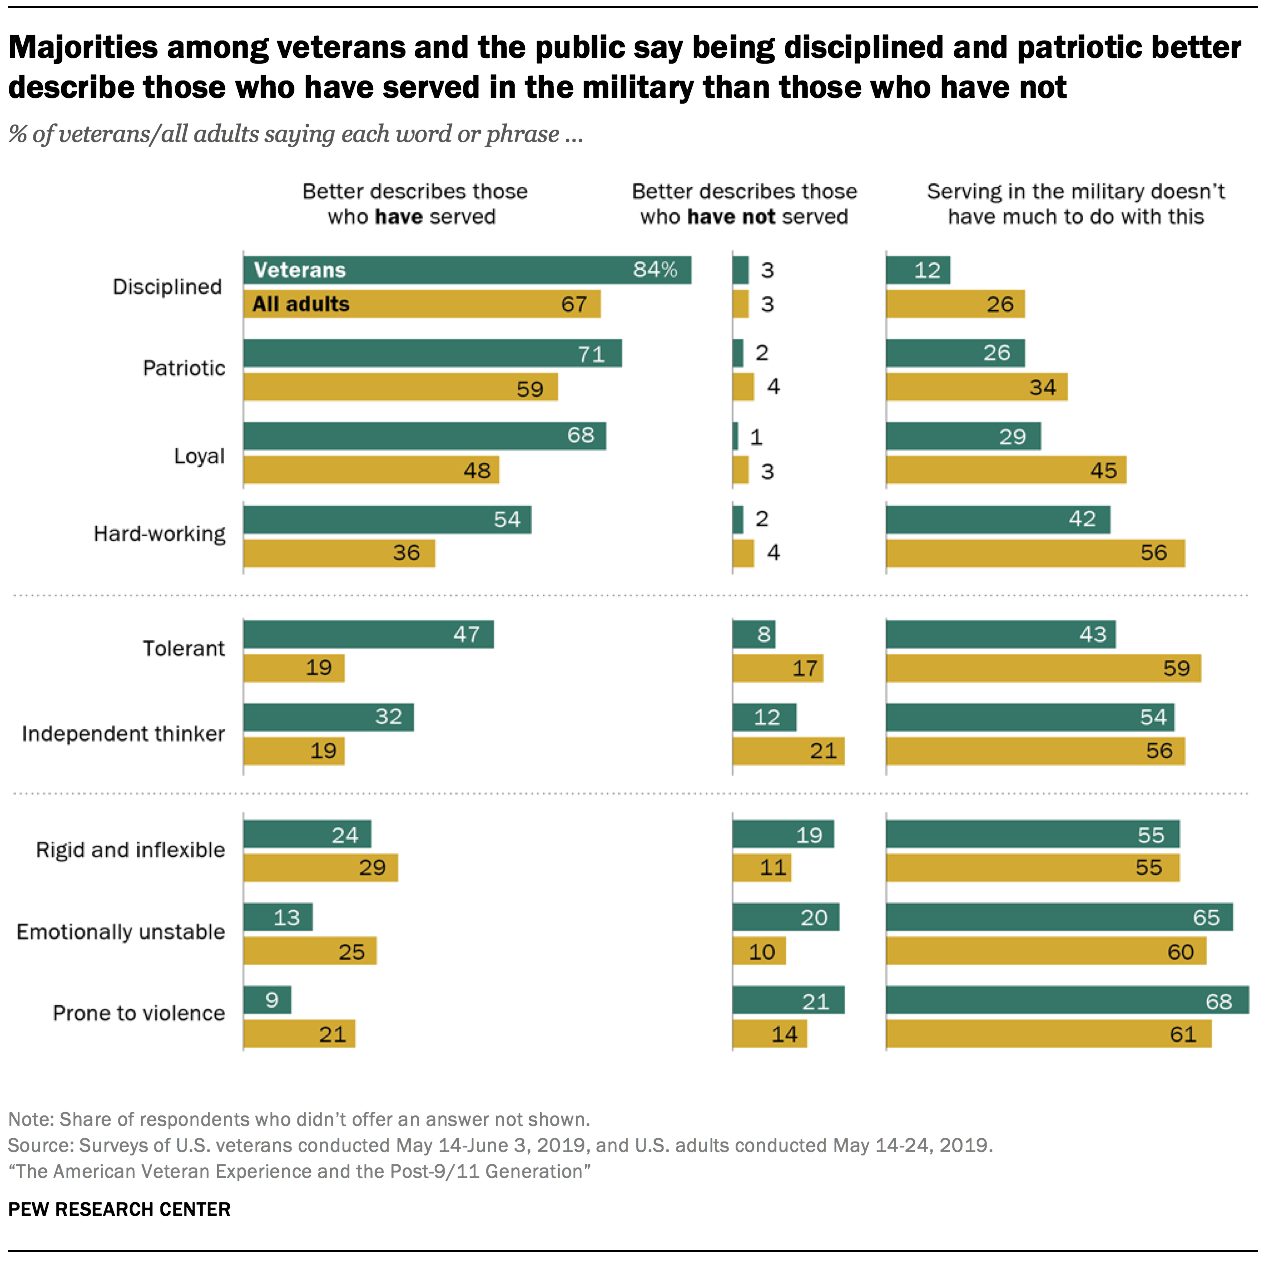 Majorities among veterans and the public say being disciplined and patriotic better describe those who have served in the military than those who have not